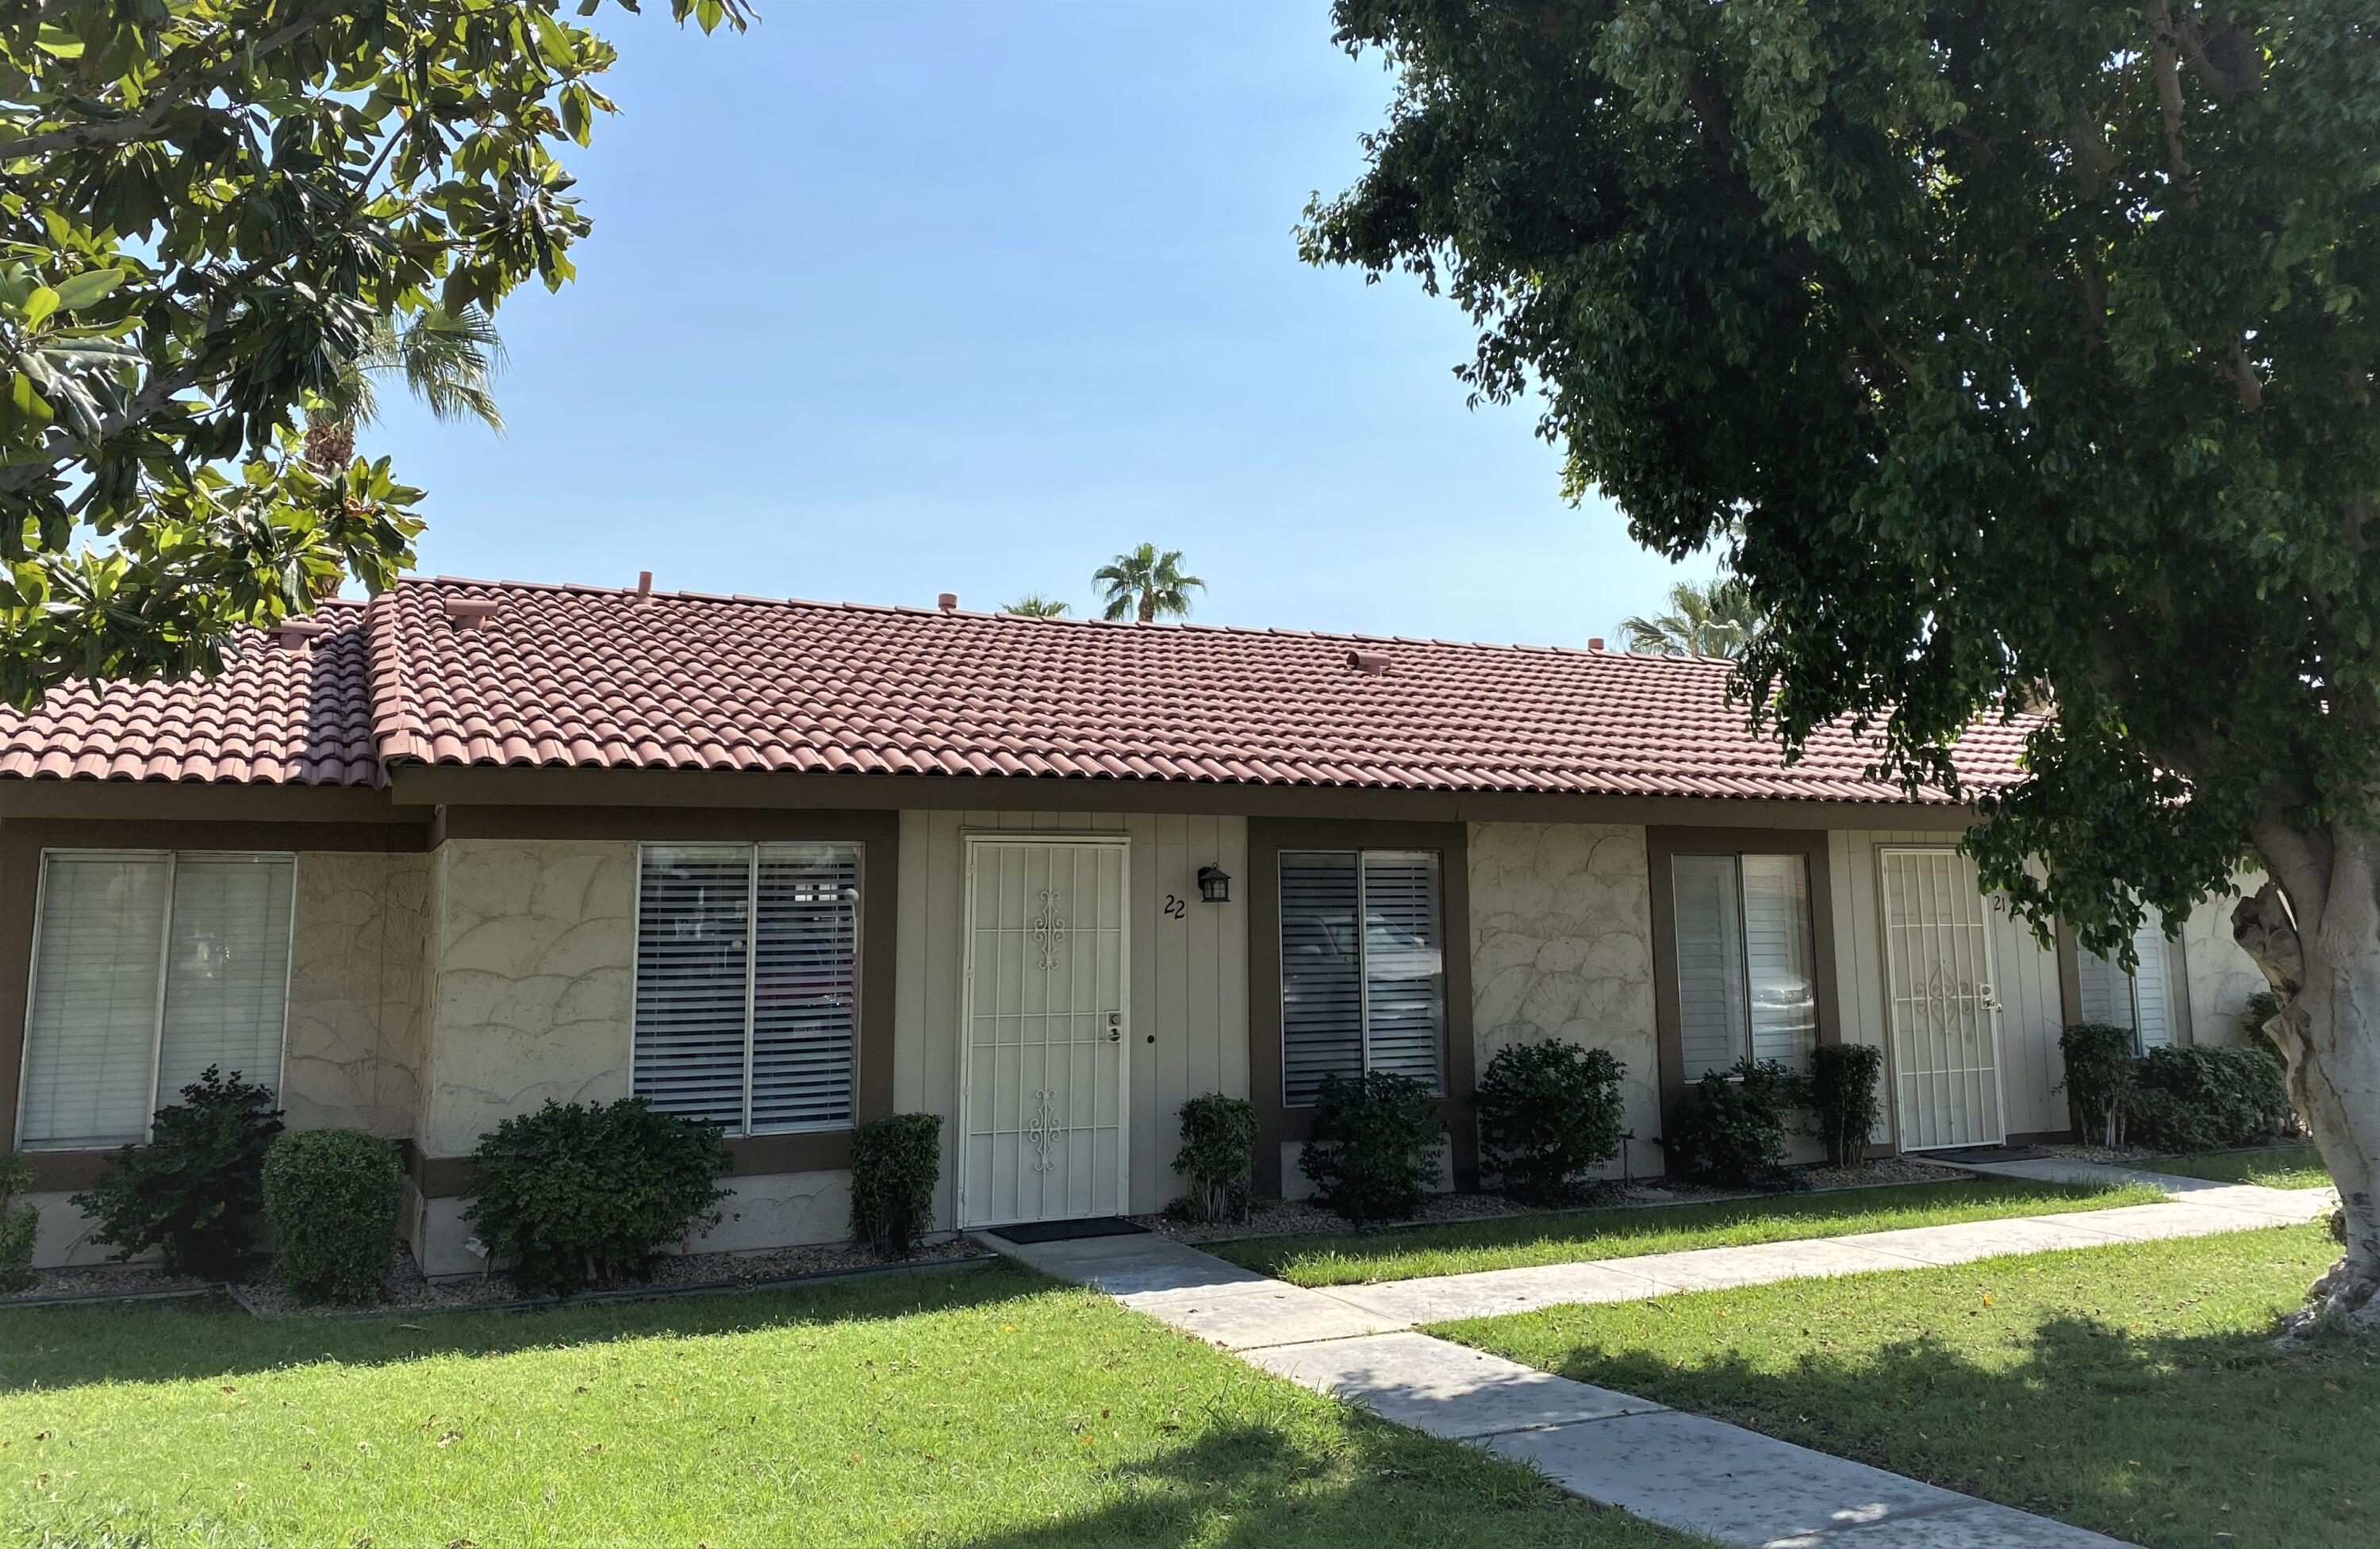 Welcome to Indian Palms in Indio.  Beautifully updated 2 bedroom / 1 bath condo at 616 sq. ft., fully furnished and ready for you to move in.  Unit features an open floorplan combining living, dining, and kitchen areas with vinyl plank flooring throughout for a modern look and easy to maintain.  Kitchen features an amazing custom blue acrylic countertop, hanging pendants, and open shelving providing an open spacious feel.  Bedrooms have ample space with primary bedroom having a built-in closet and guest BR having a cubby storage system.  Convenient location to the pool and public laundry facility. Indian Palms is the prime location for walking to the Coachella and Stagecoach festivals as well as close to biking and hiking trails, casinos, restaurants, and shopping. In addition, you have low HOAs and low cost for electricity with Imperial Irrigation District!